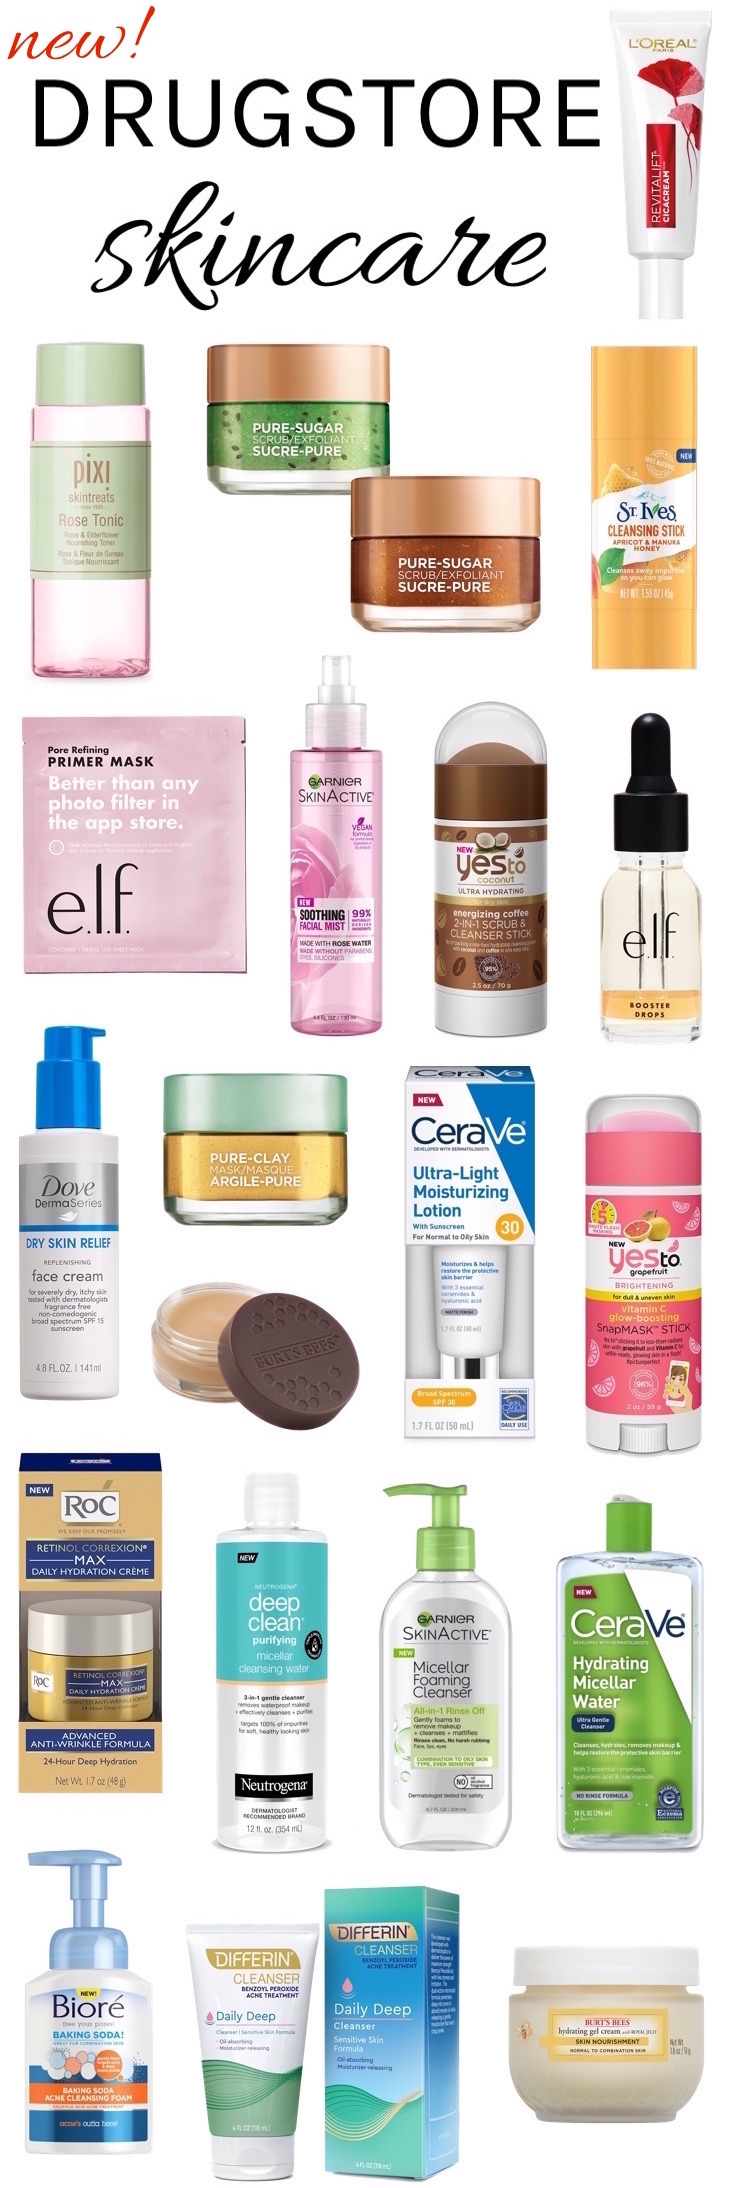 Finding yourself spent after the holidays? Save now with these NEW drugstore skincare products that you can snag for under $  20 each!